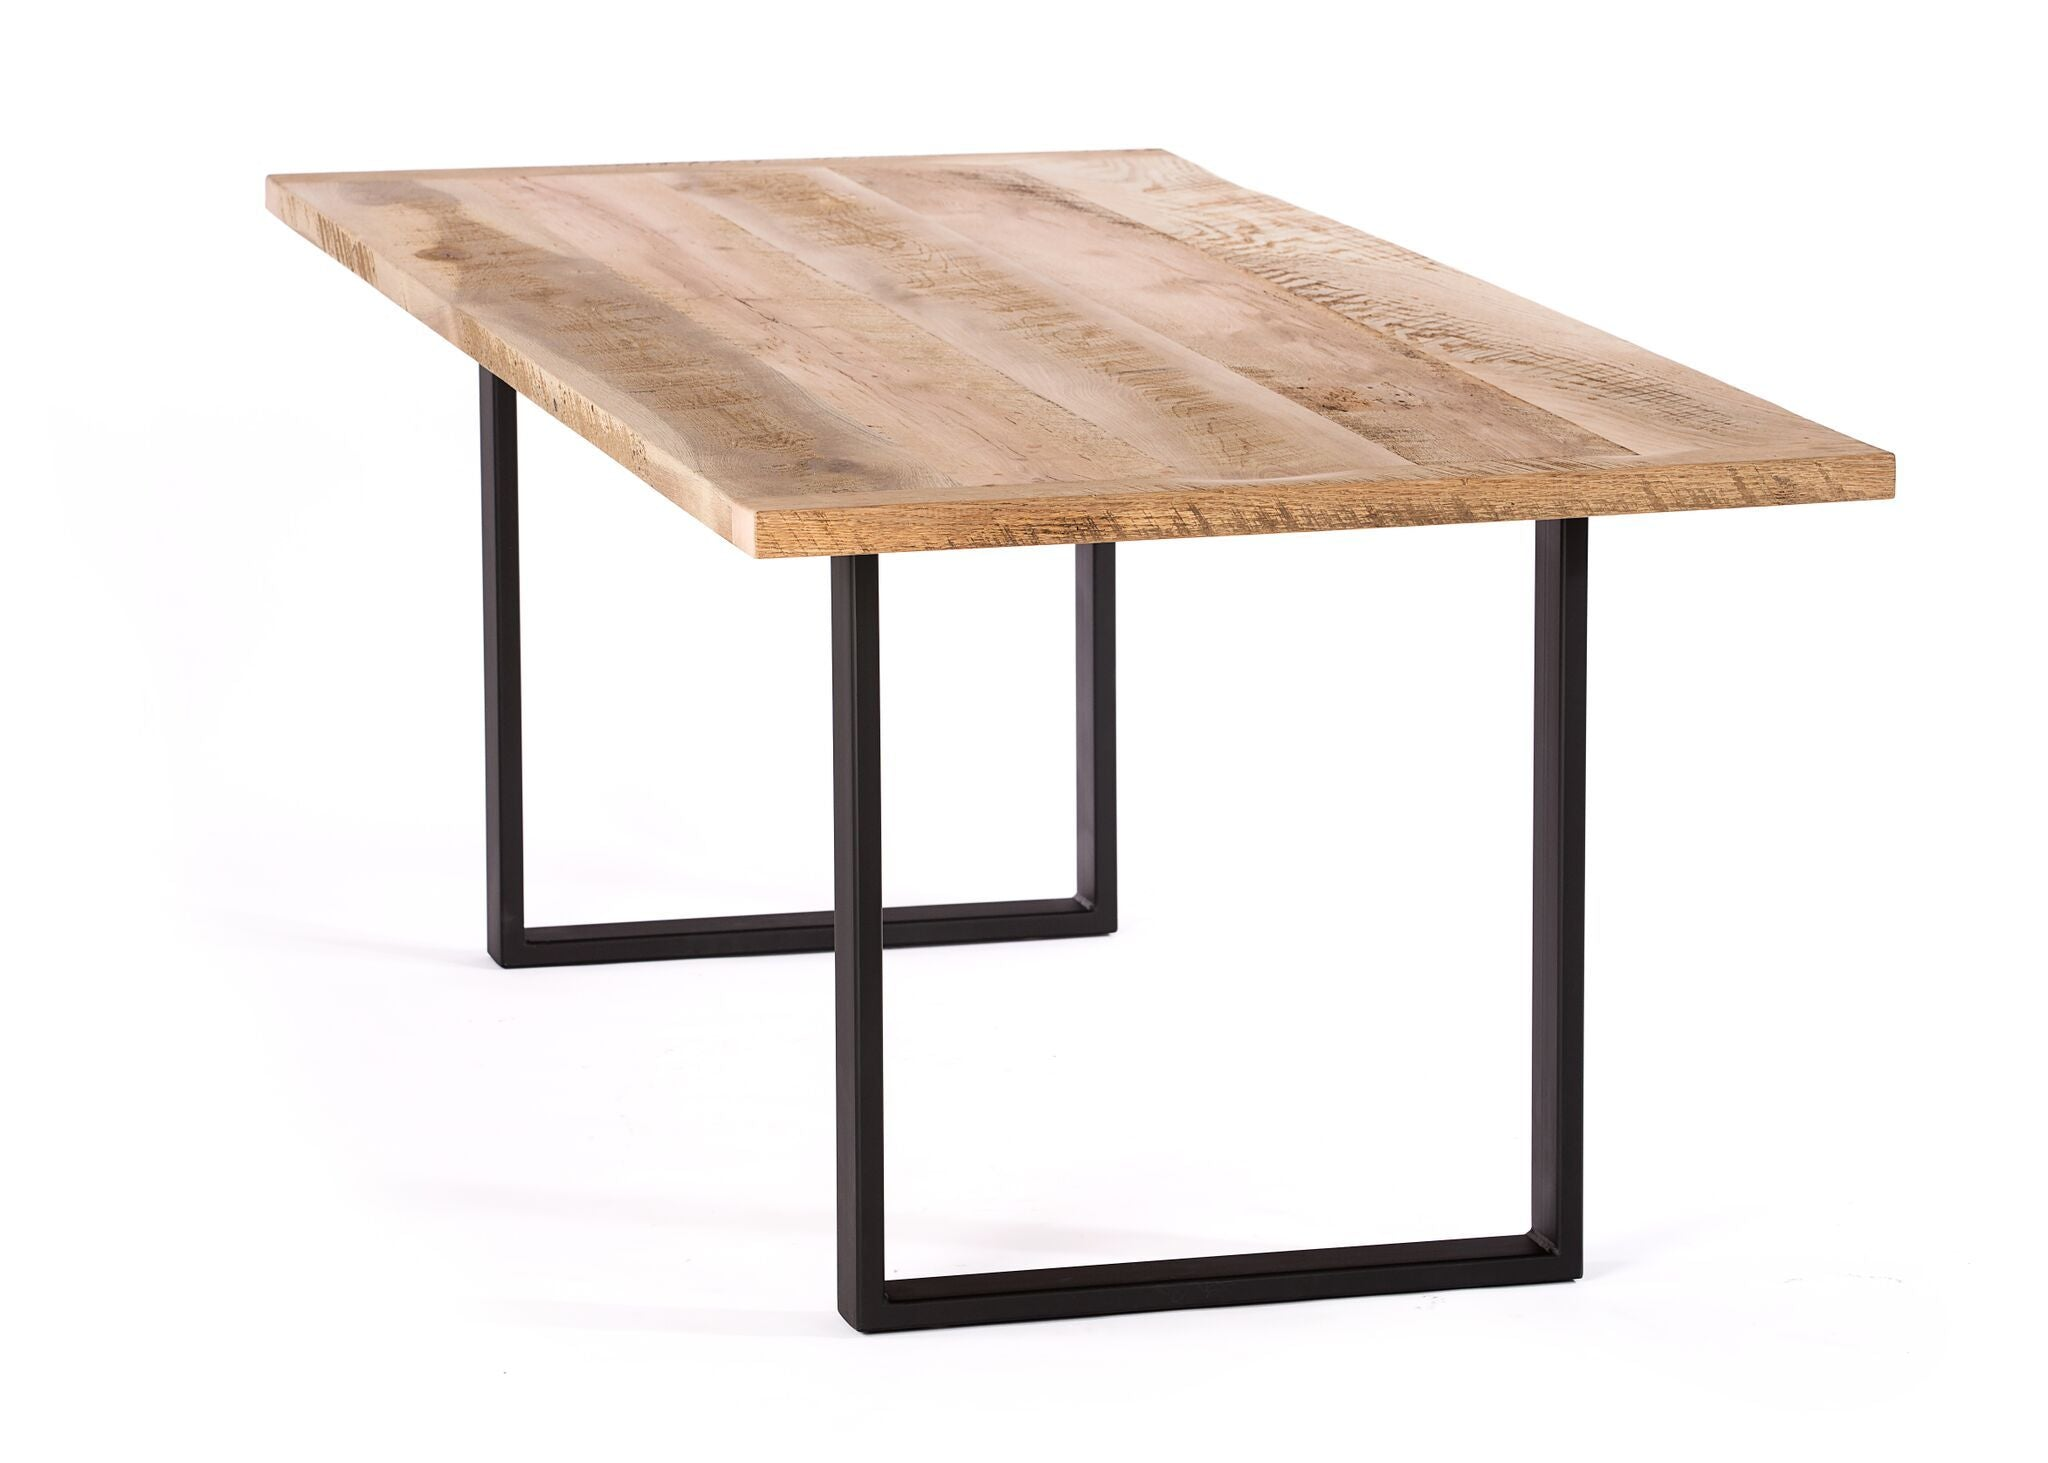 Rectangular Wood Tables | Maddox Table | Ash | Ash | CUSTOM SIZE L 60 W 30 H 30 | 1.75""